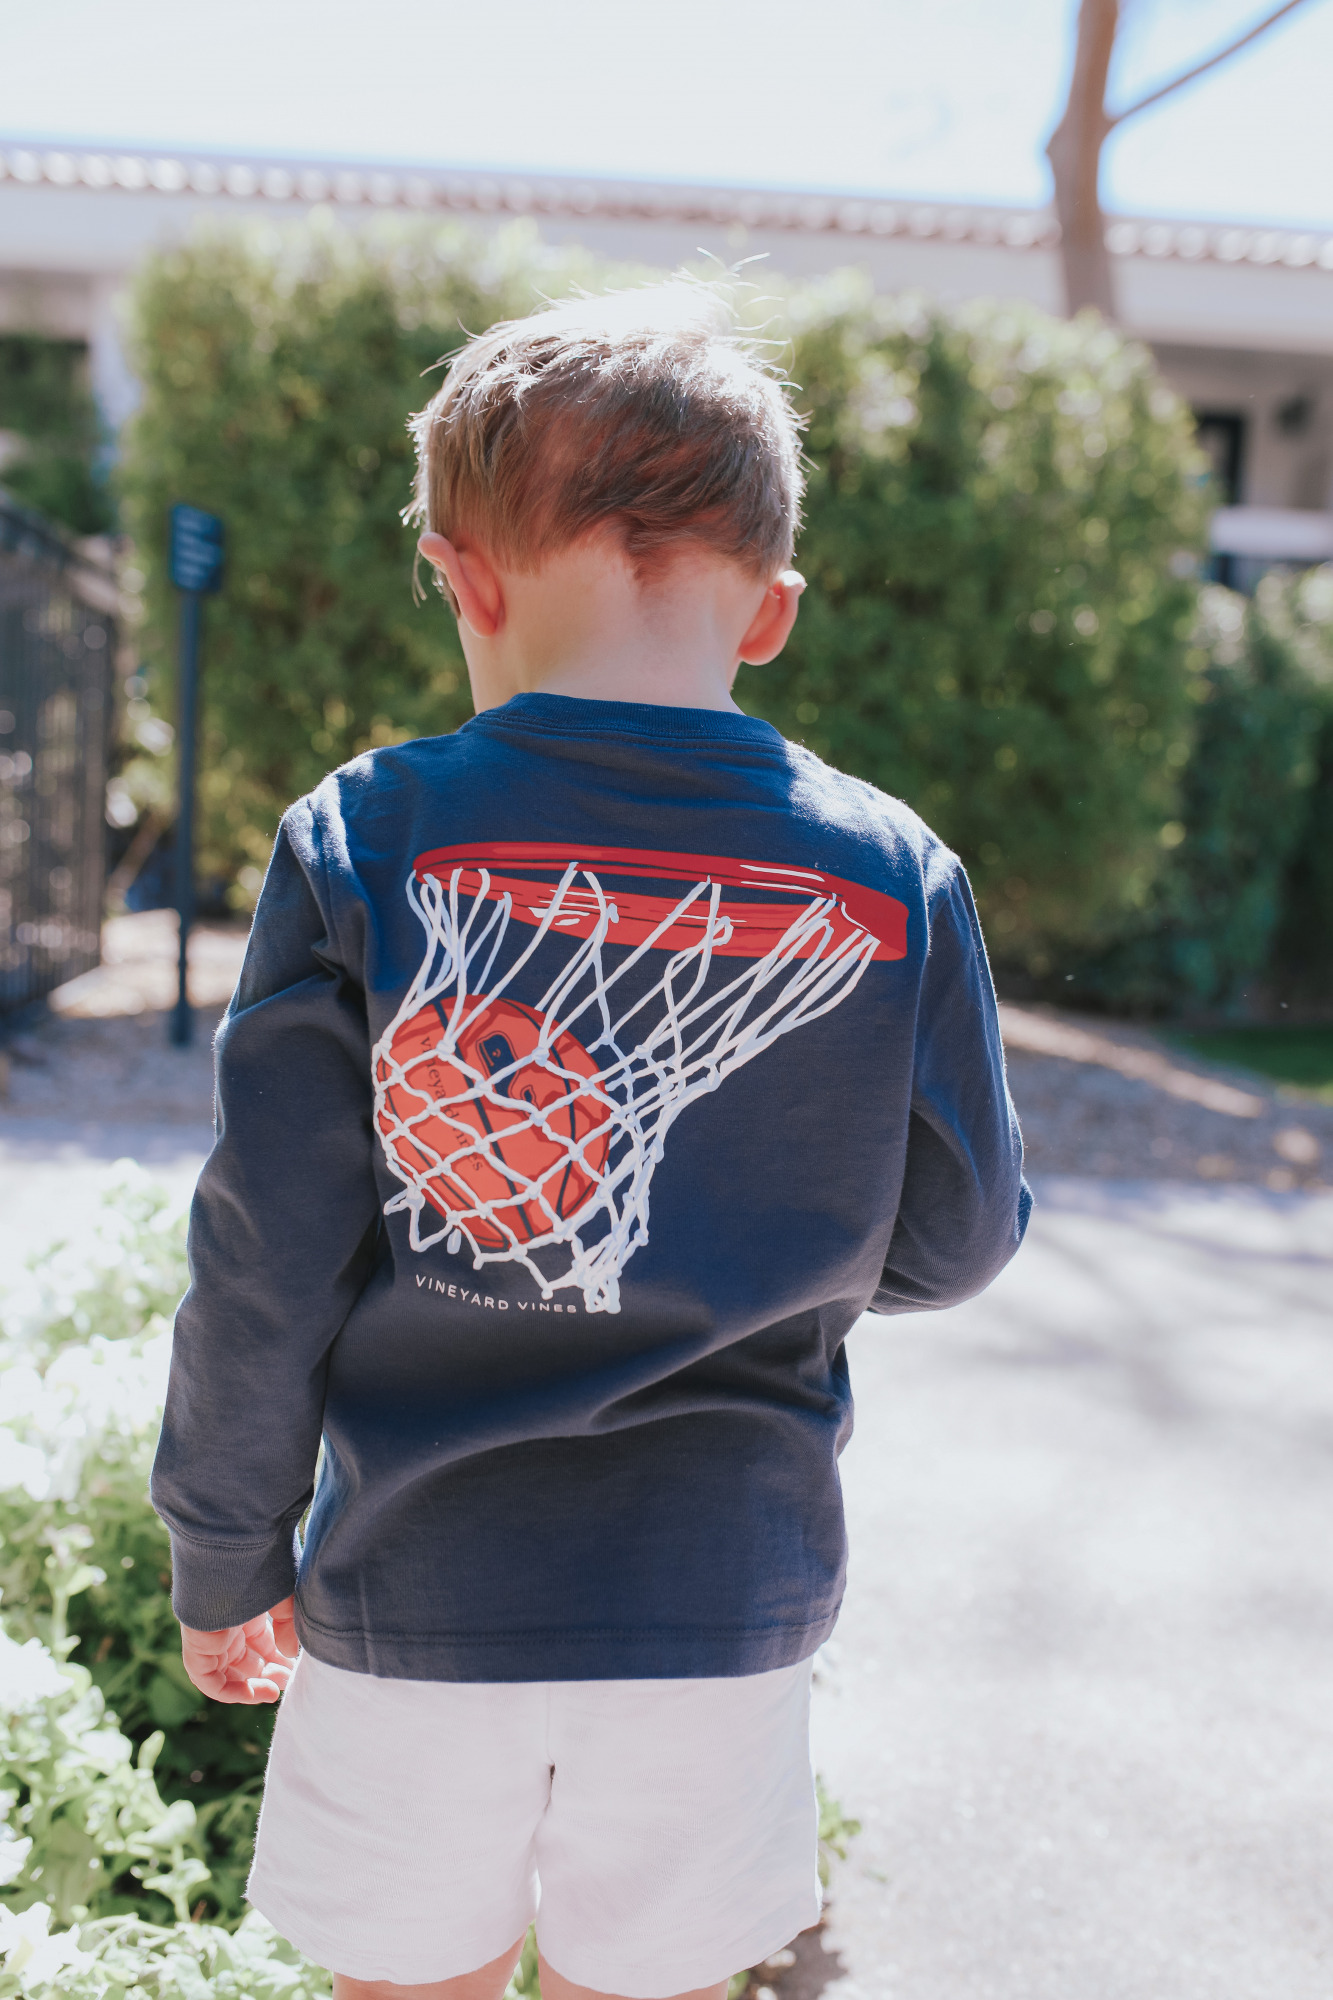 emily gemma, nordstrom vineyard vines tee shirt kids, scottsdale fashion blogger |Mom Jeans by popular US fashion blog, The Sweetest Thing: image of a little boy standing outside in Scottsdale, Arizona and wearing a Vineyard Vines t-shirt with tan shorts.